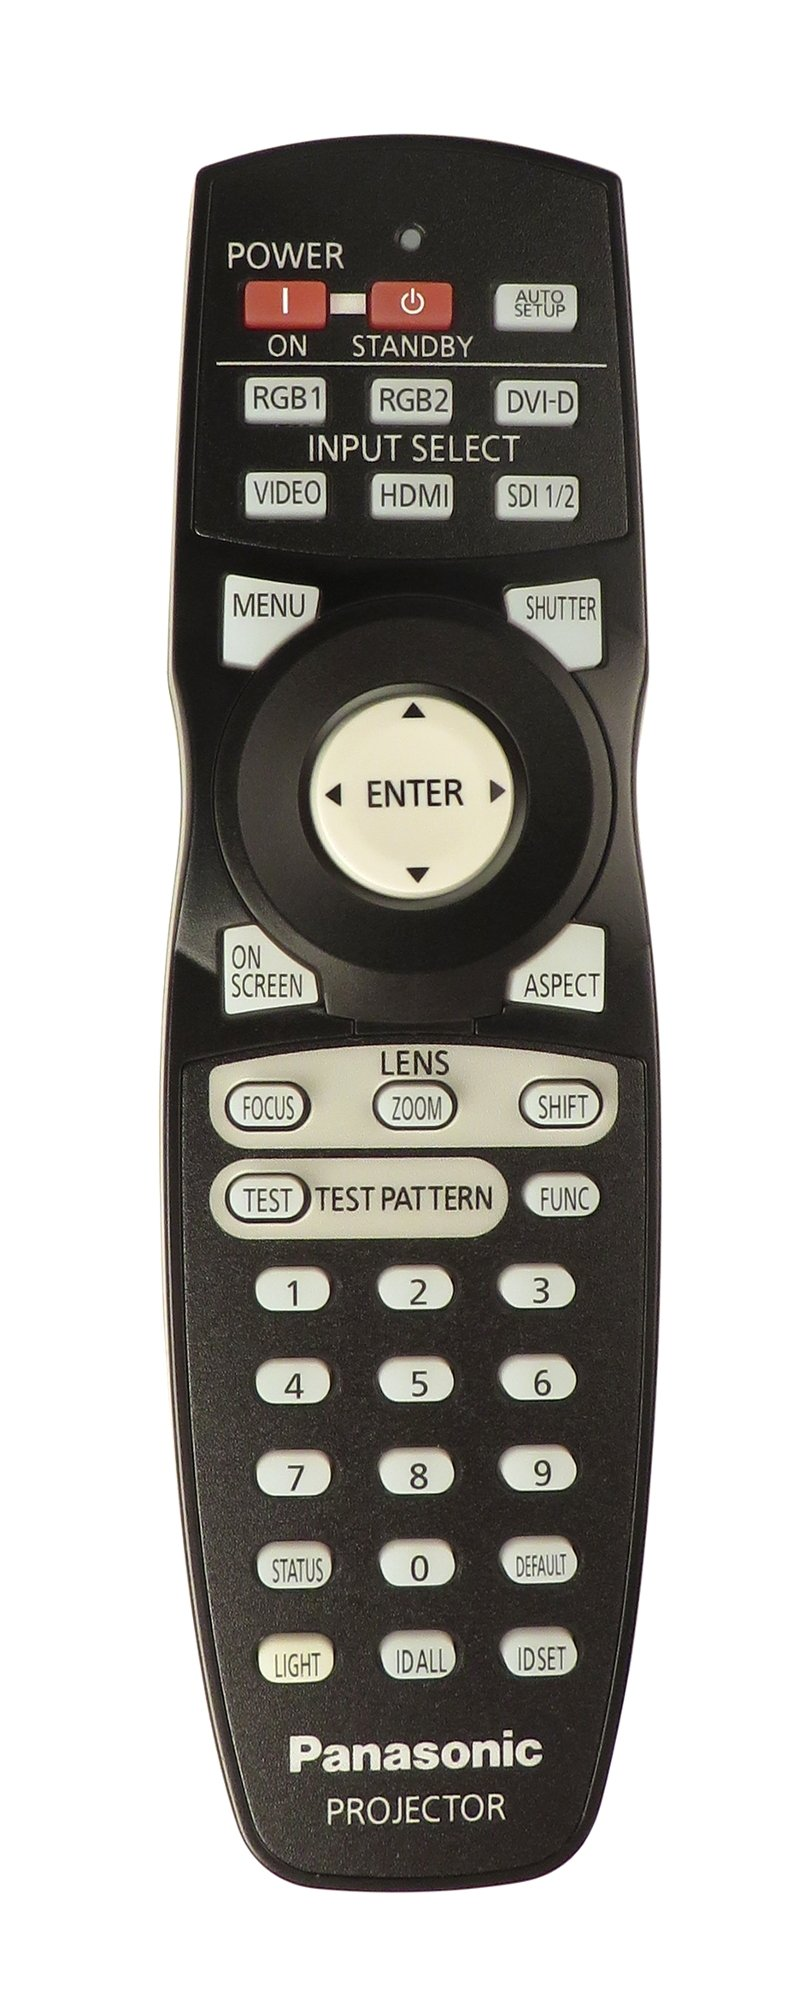 Remote for Panasonic PT-DZ10KU